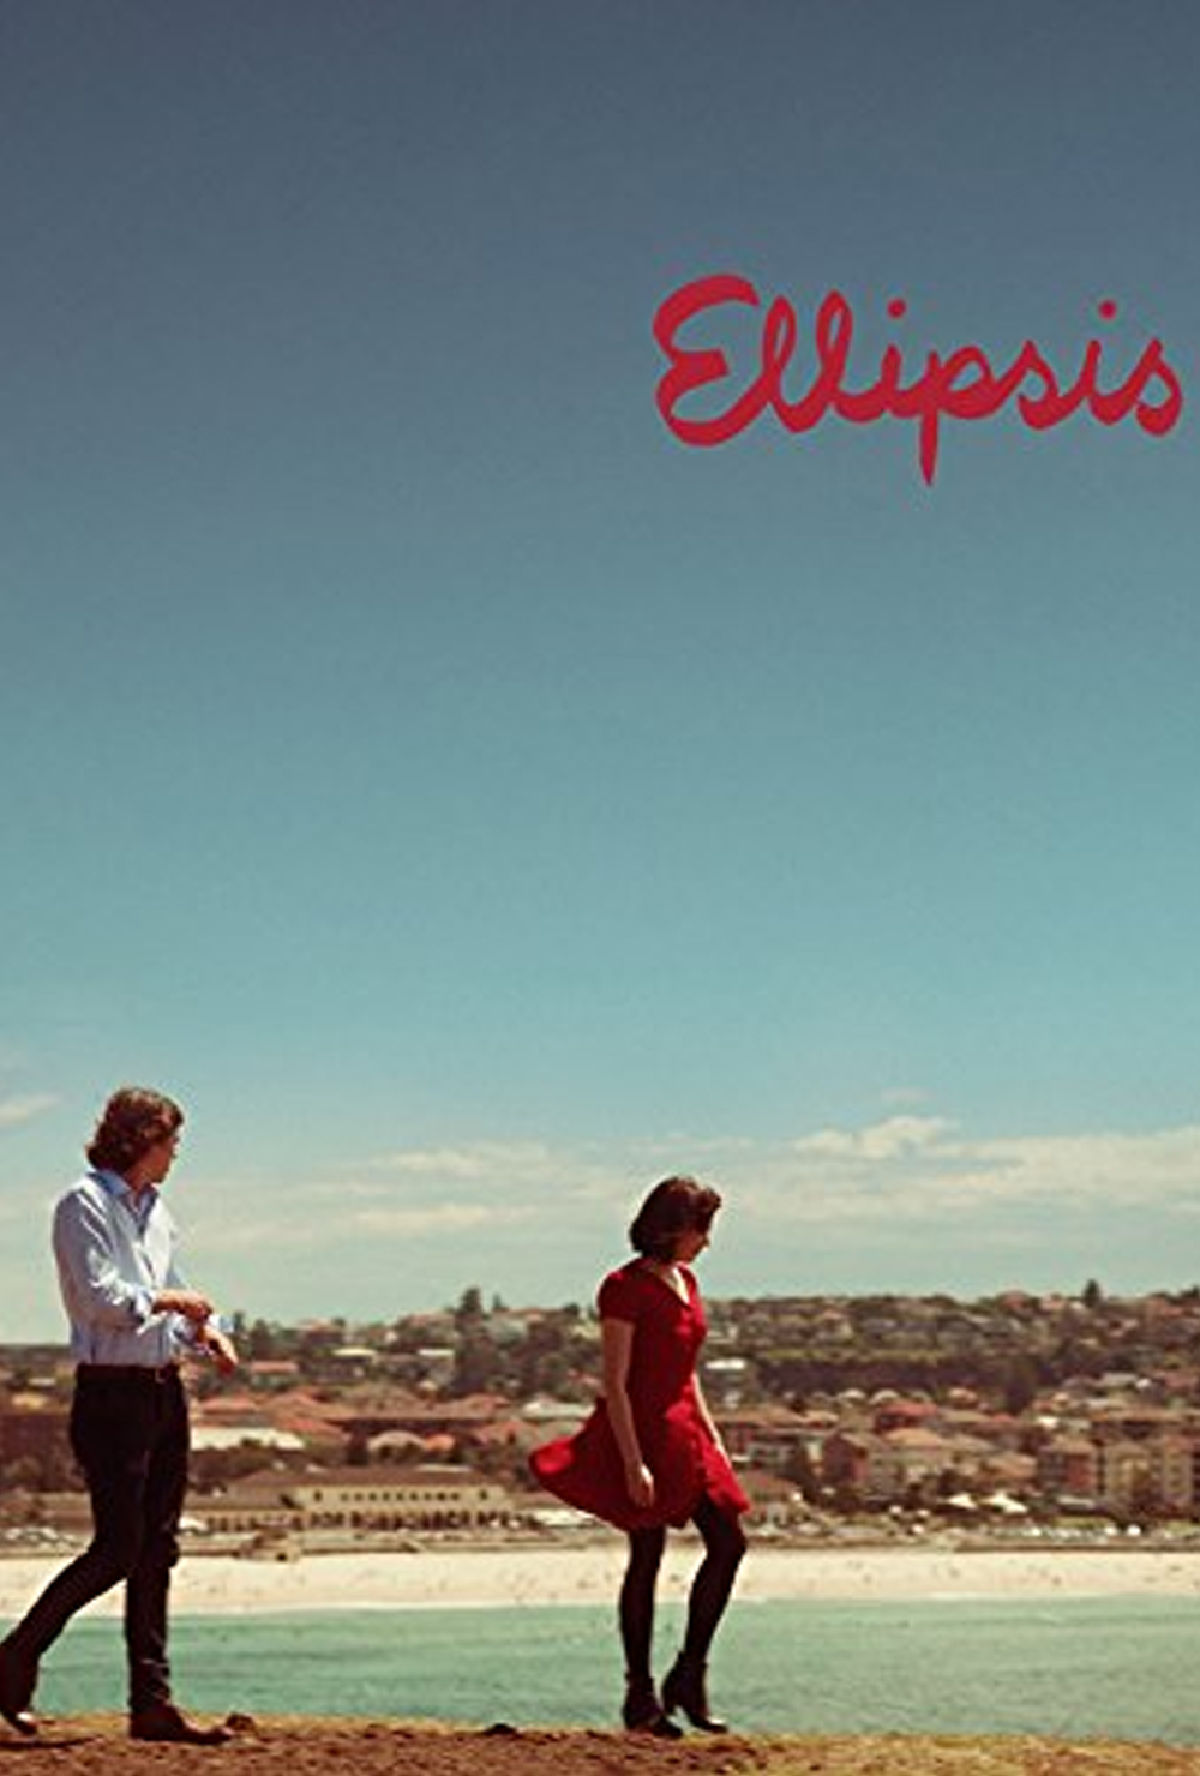 'Ellipsis' movie poster